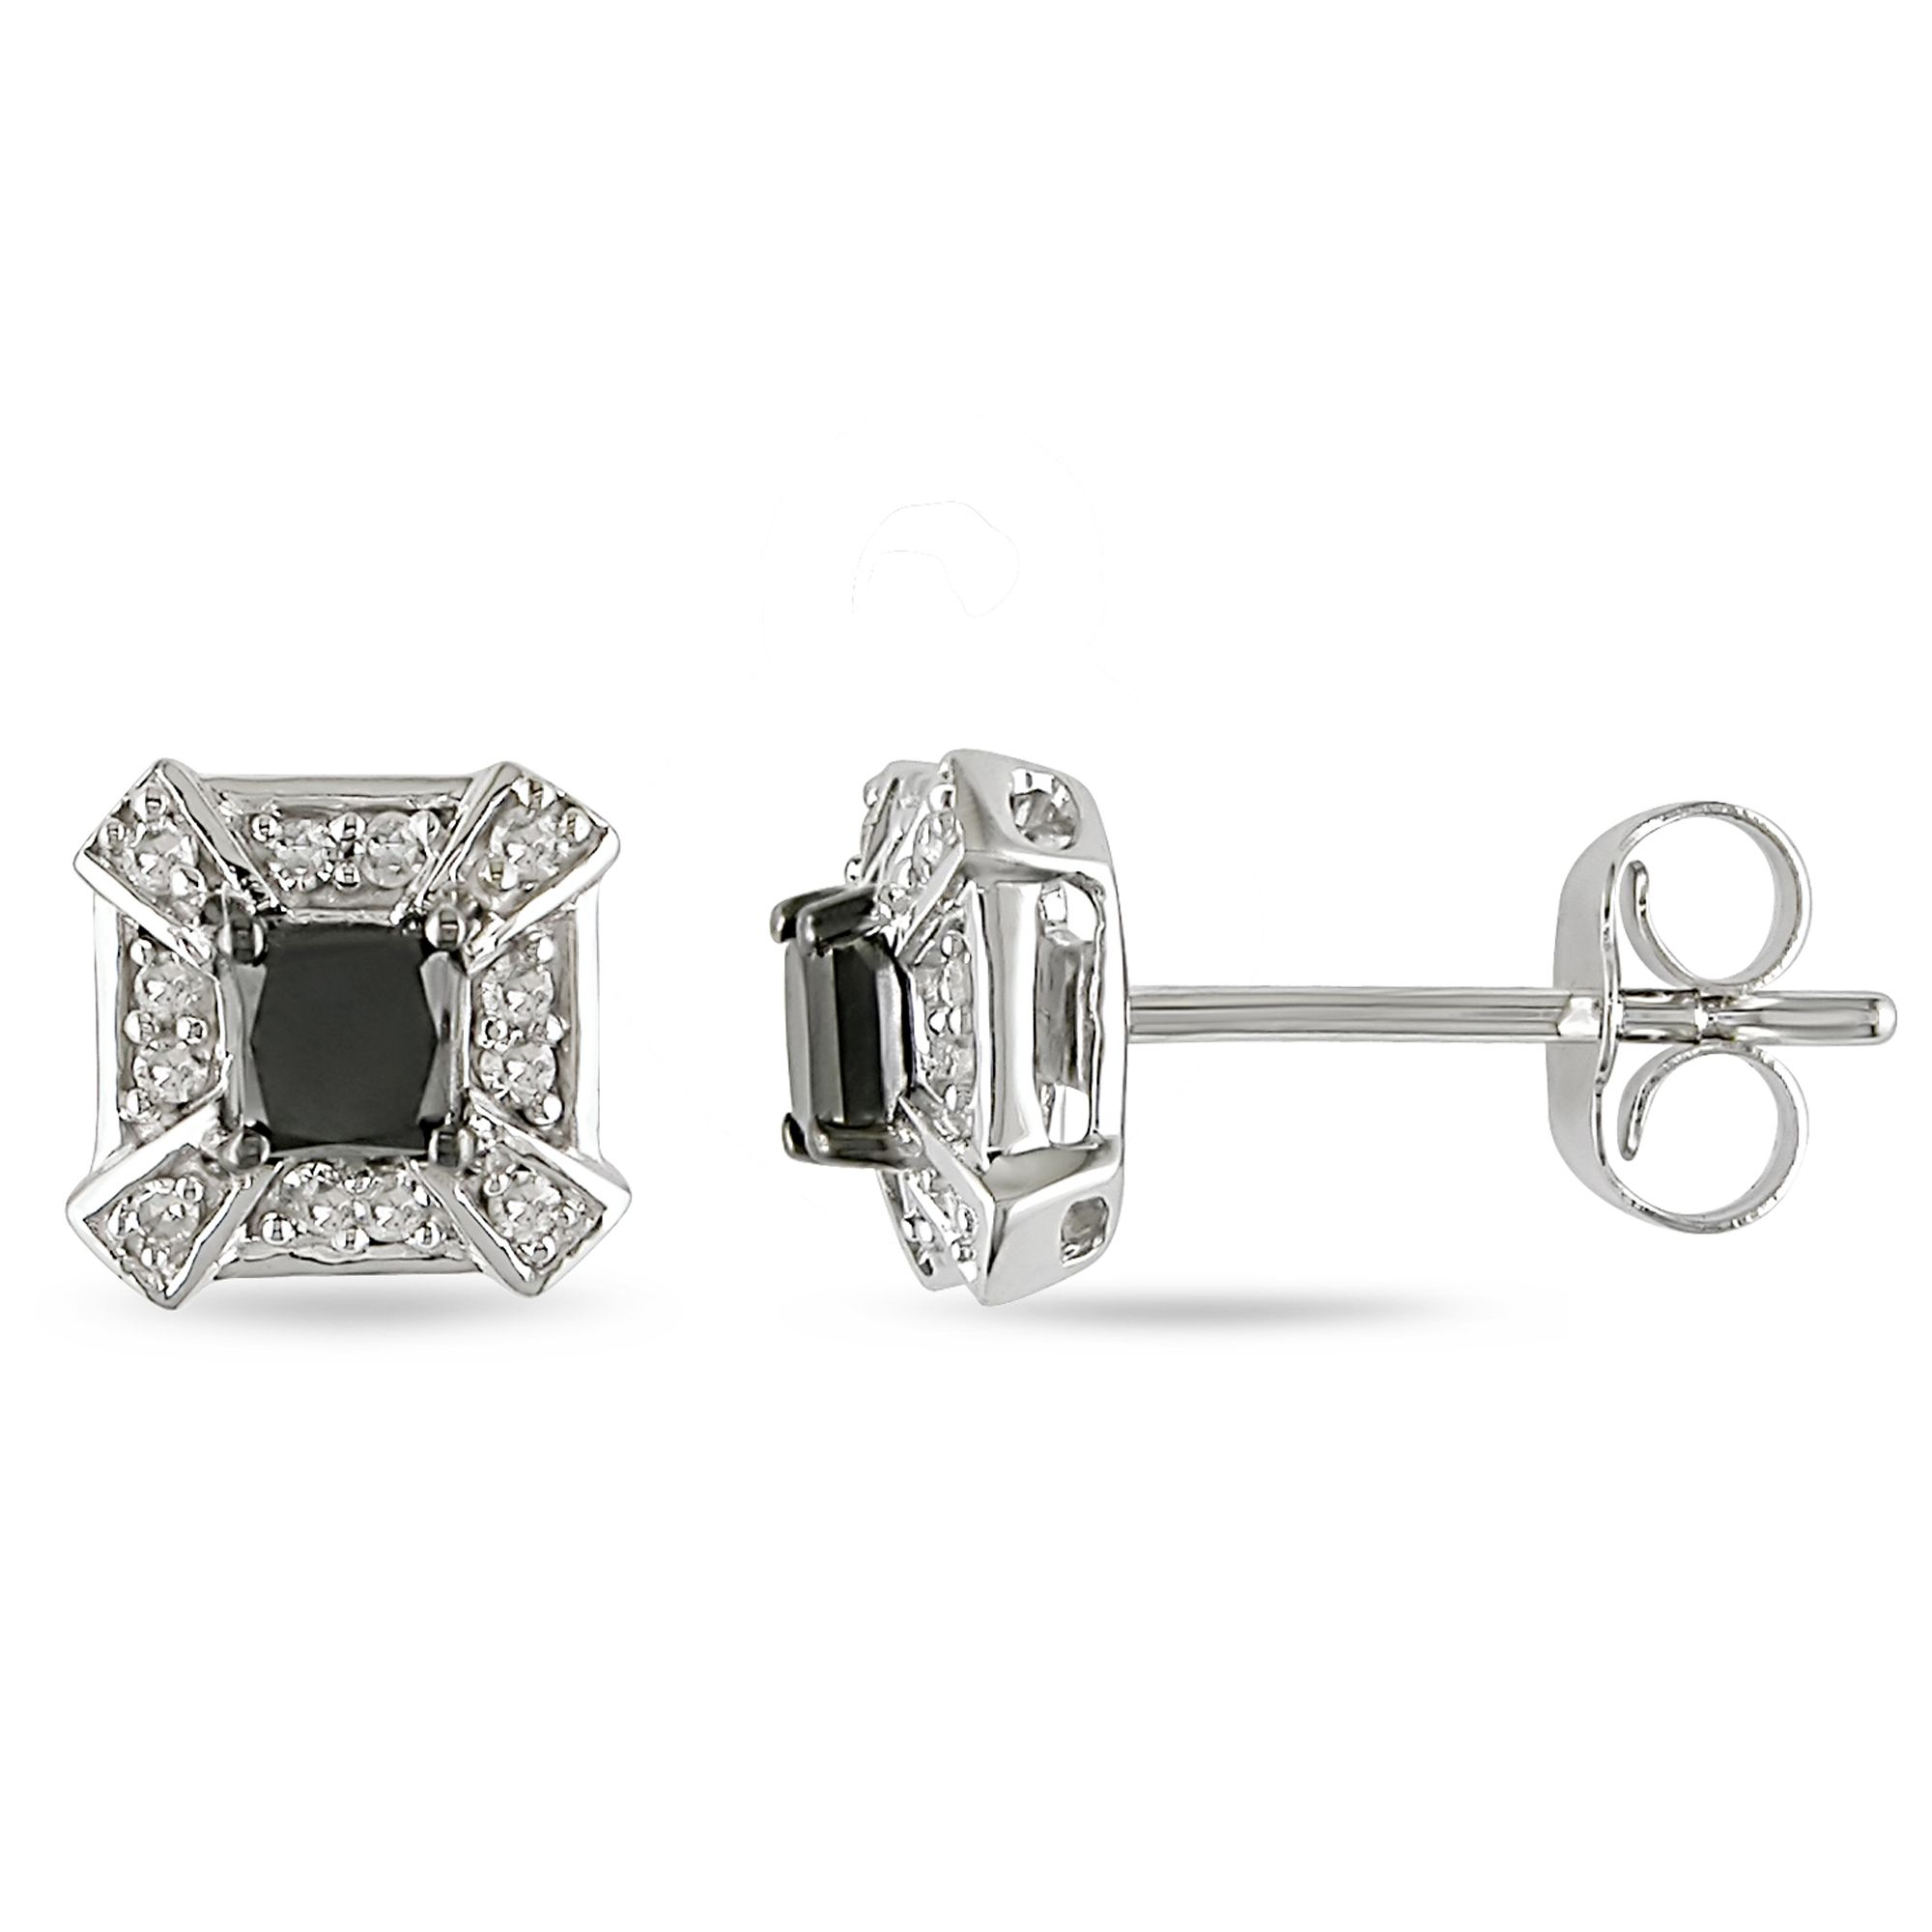 1/2 cttw Black and White Diamond Earrings in